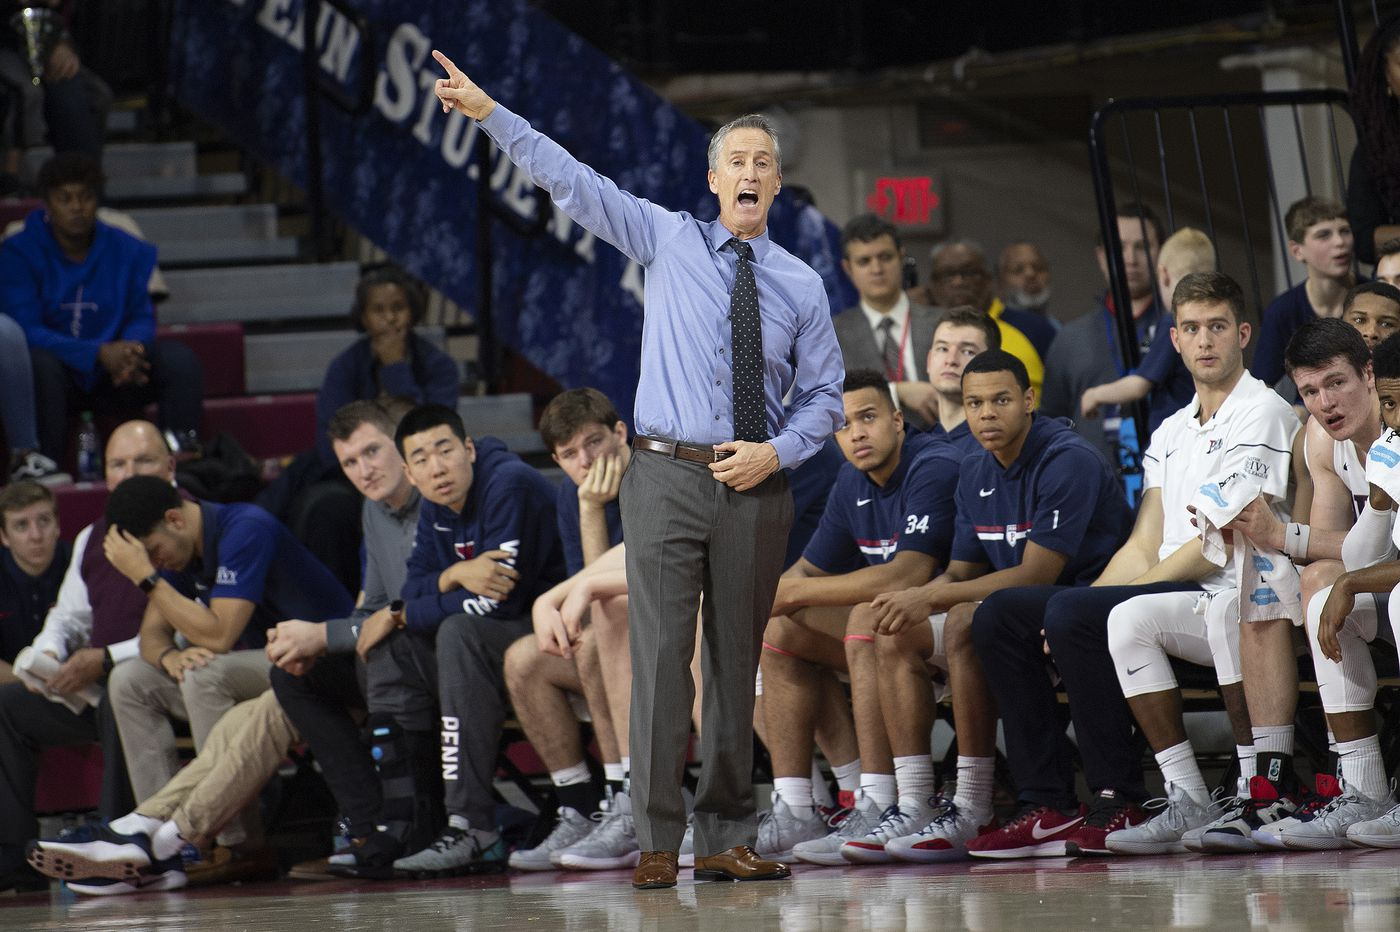 Penn's depth thrills Steve Donahue as Quakers aim for Ivy League rivals | College basketball preview